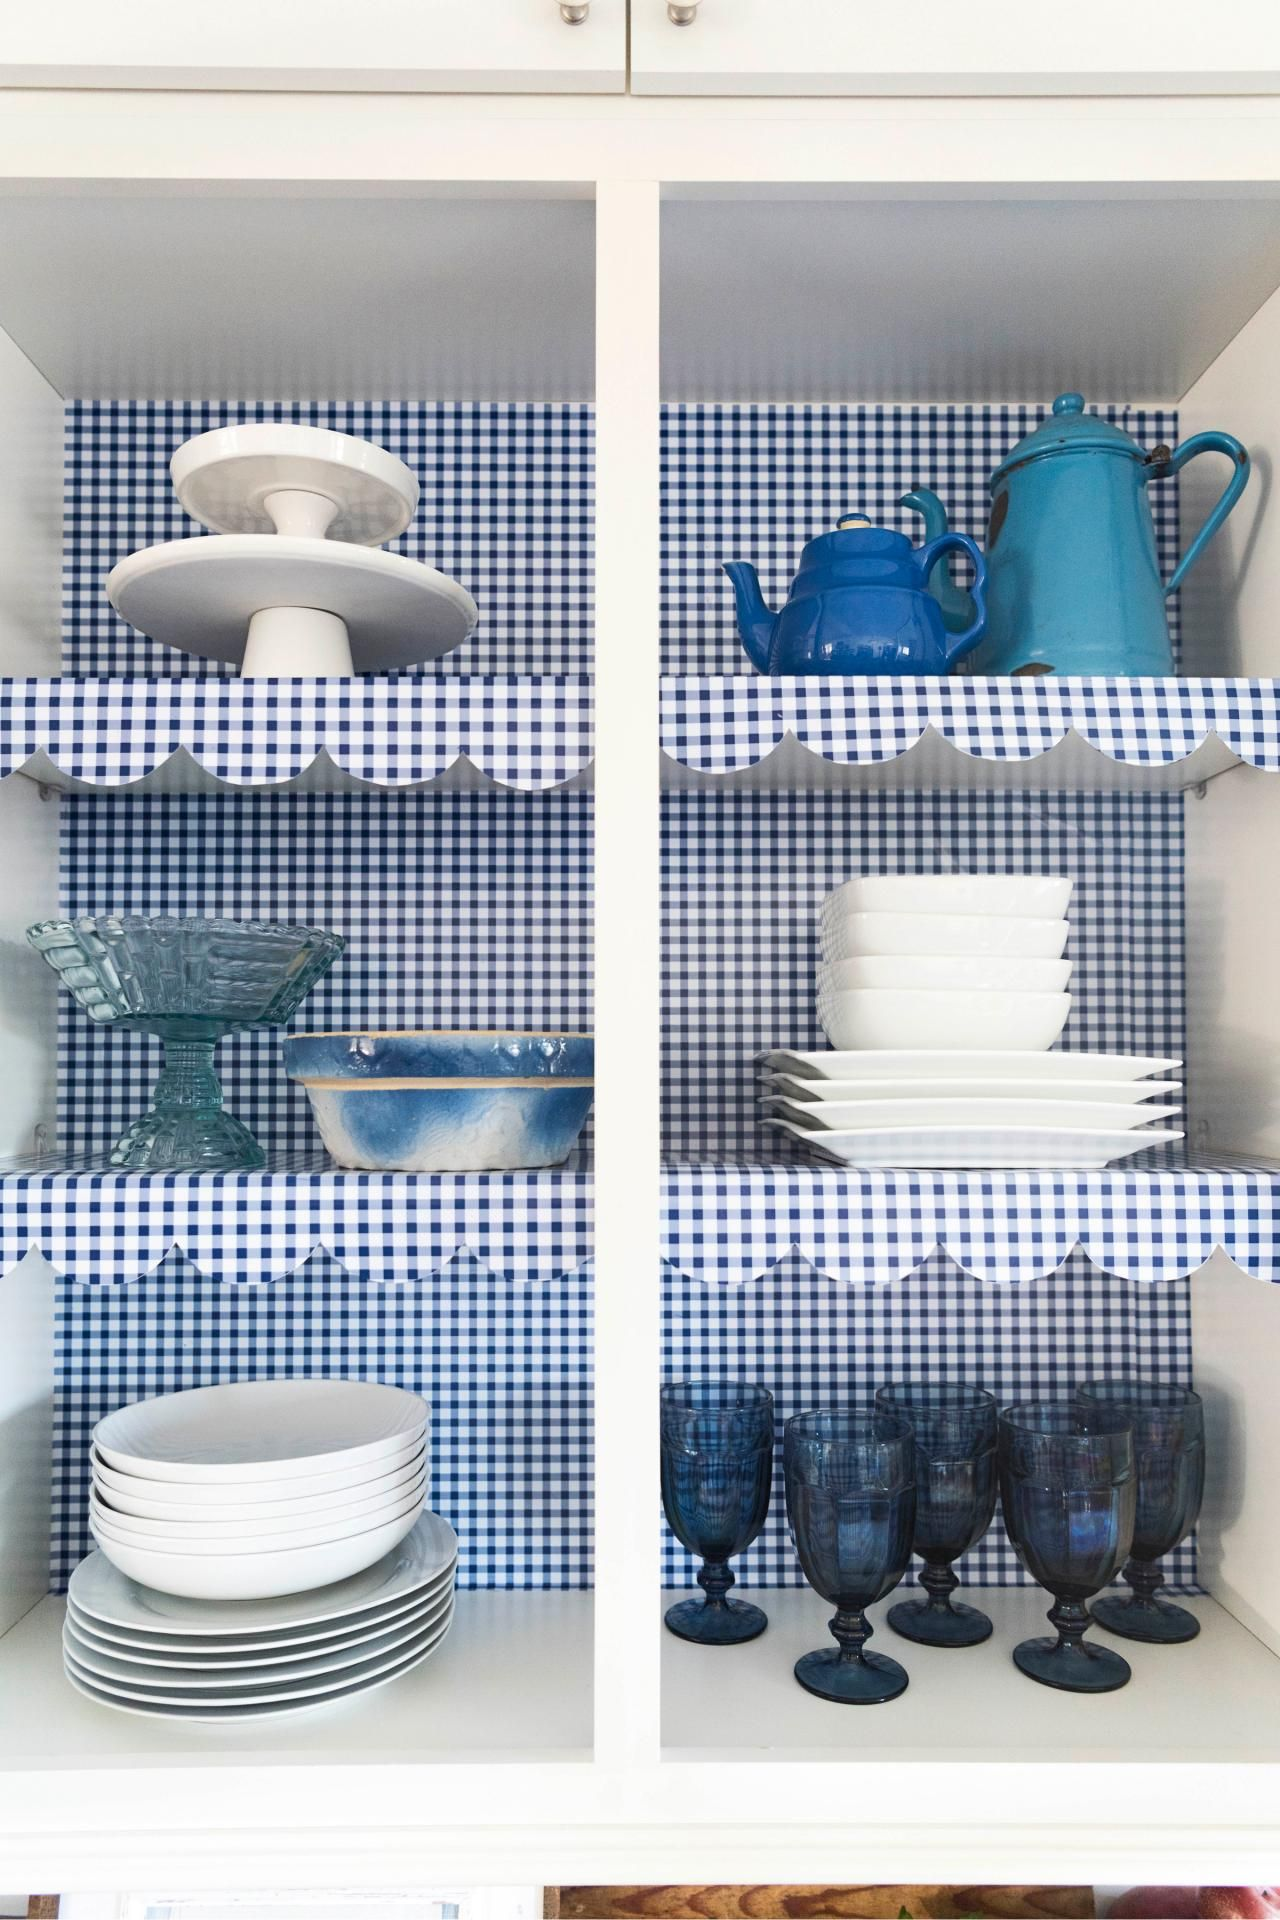 10 Kitchen Shelf Liner Ideas 2020 Looking Beautiful Kitchen Shelf Liner Shelf Liner Diy Decor Projects